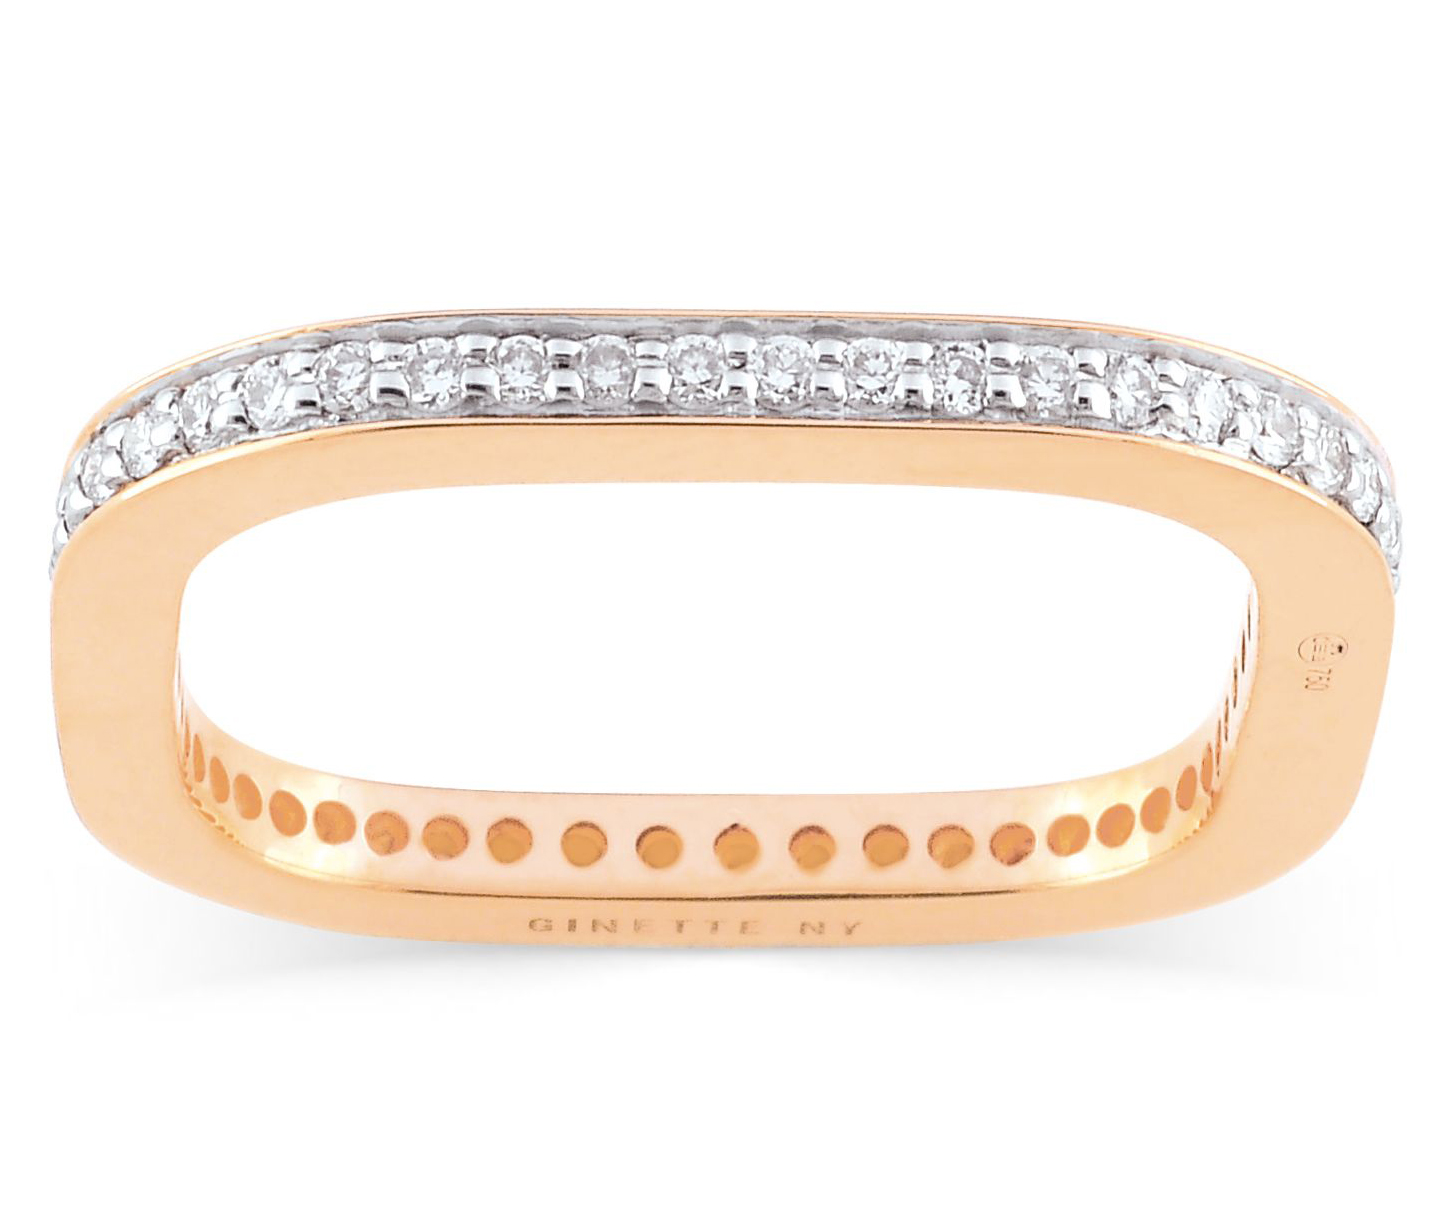 Minimalist Engagement Rings: Ginette square pavé eternity band